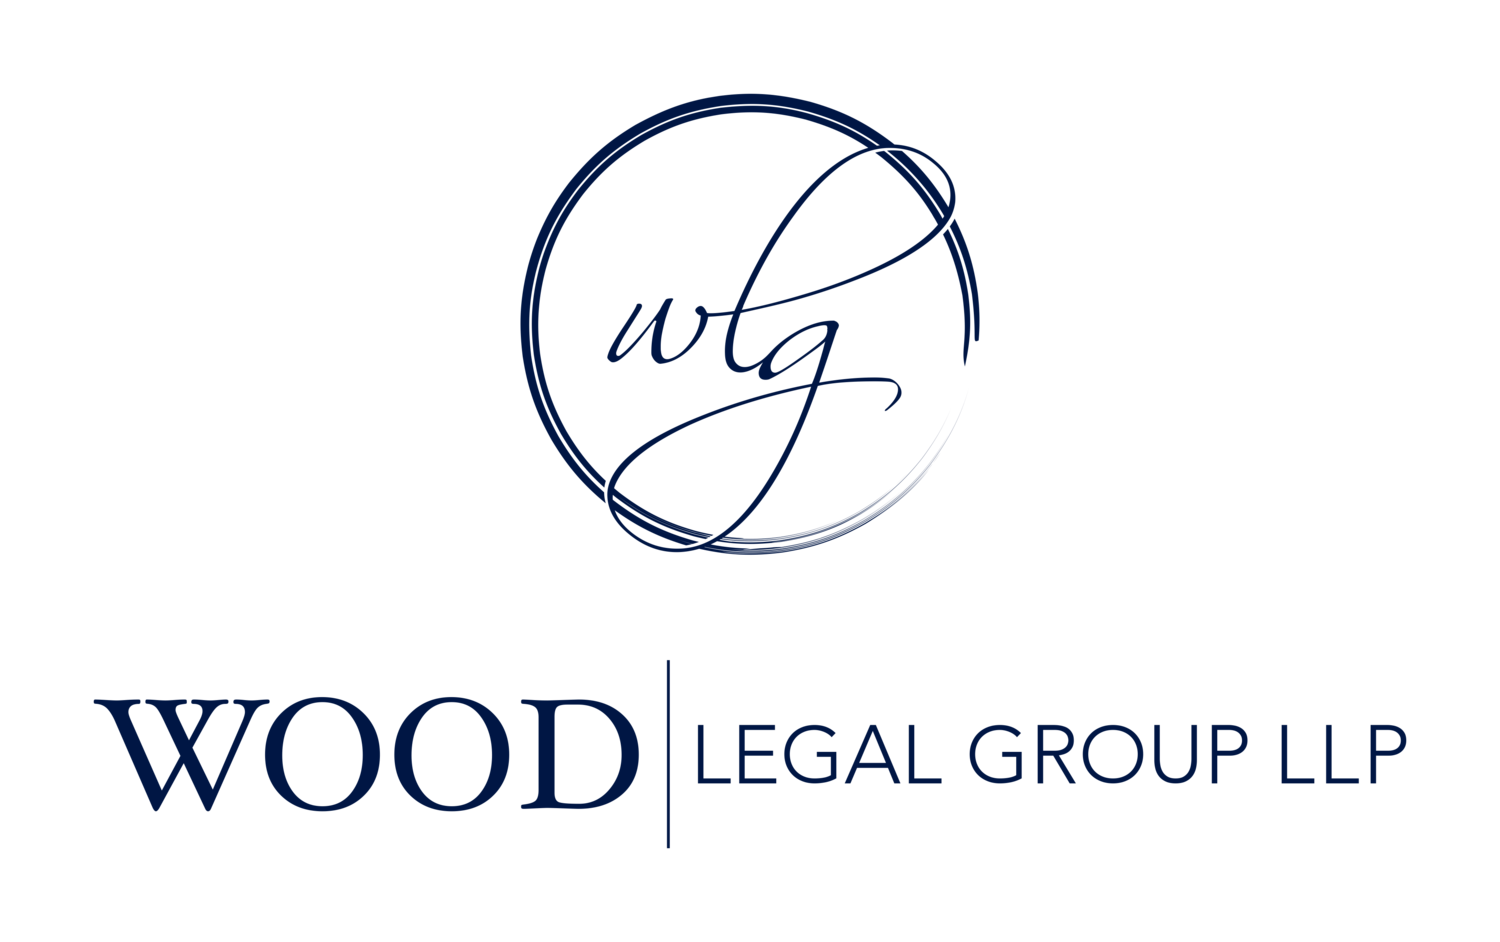 Wood Legal Group